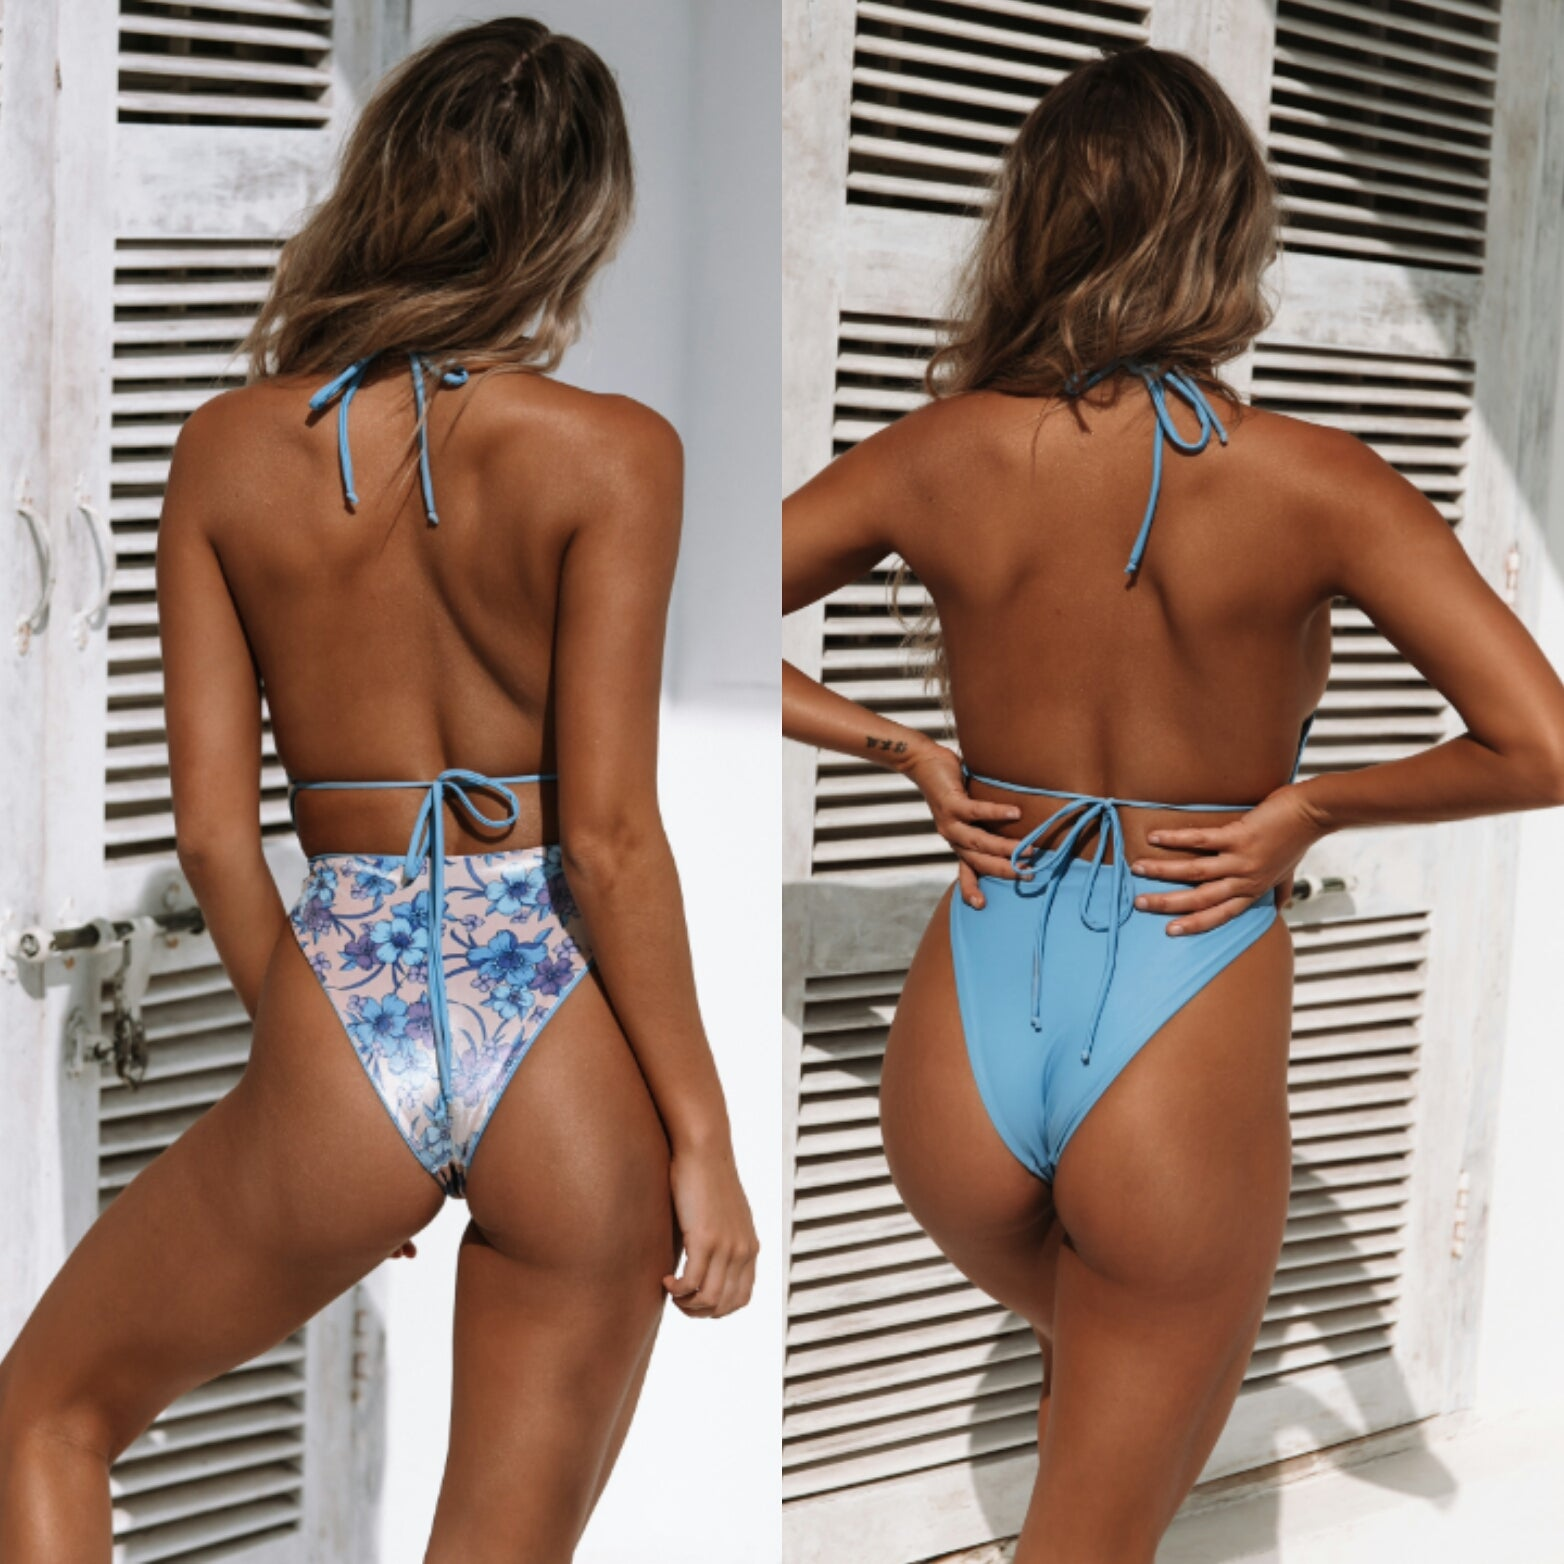 Malibu Wrap One Piece Swimwear in Dusky Blue/Dusky Blue Floral